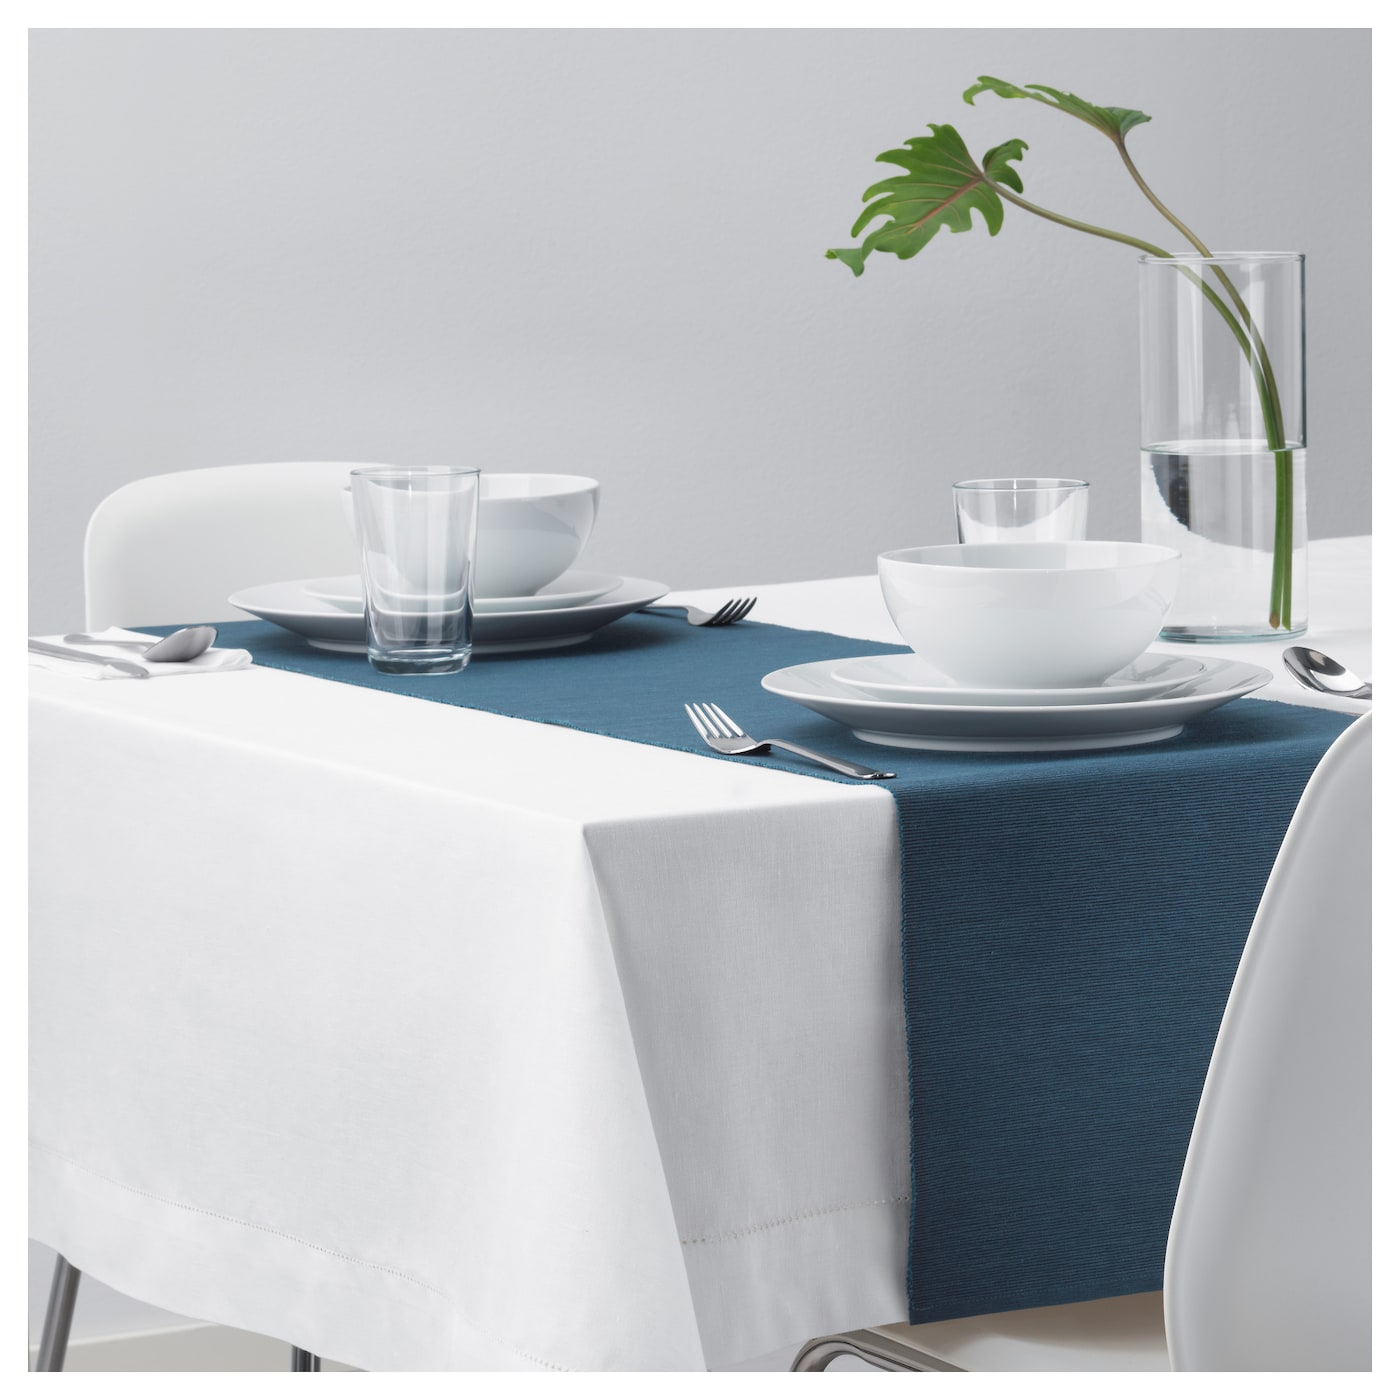 m rit chemin de table bleu fonc 35x130 cm ikea. Black Bedroom Furniture Sets. Home Design Ideas